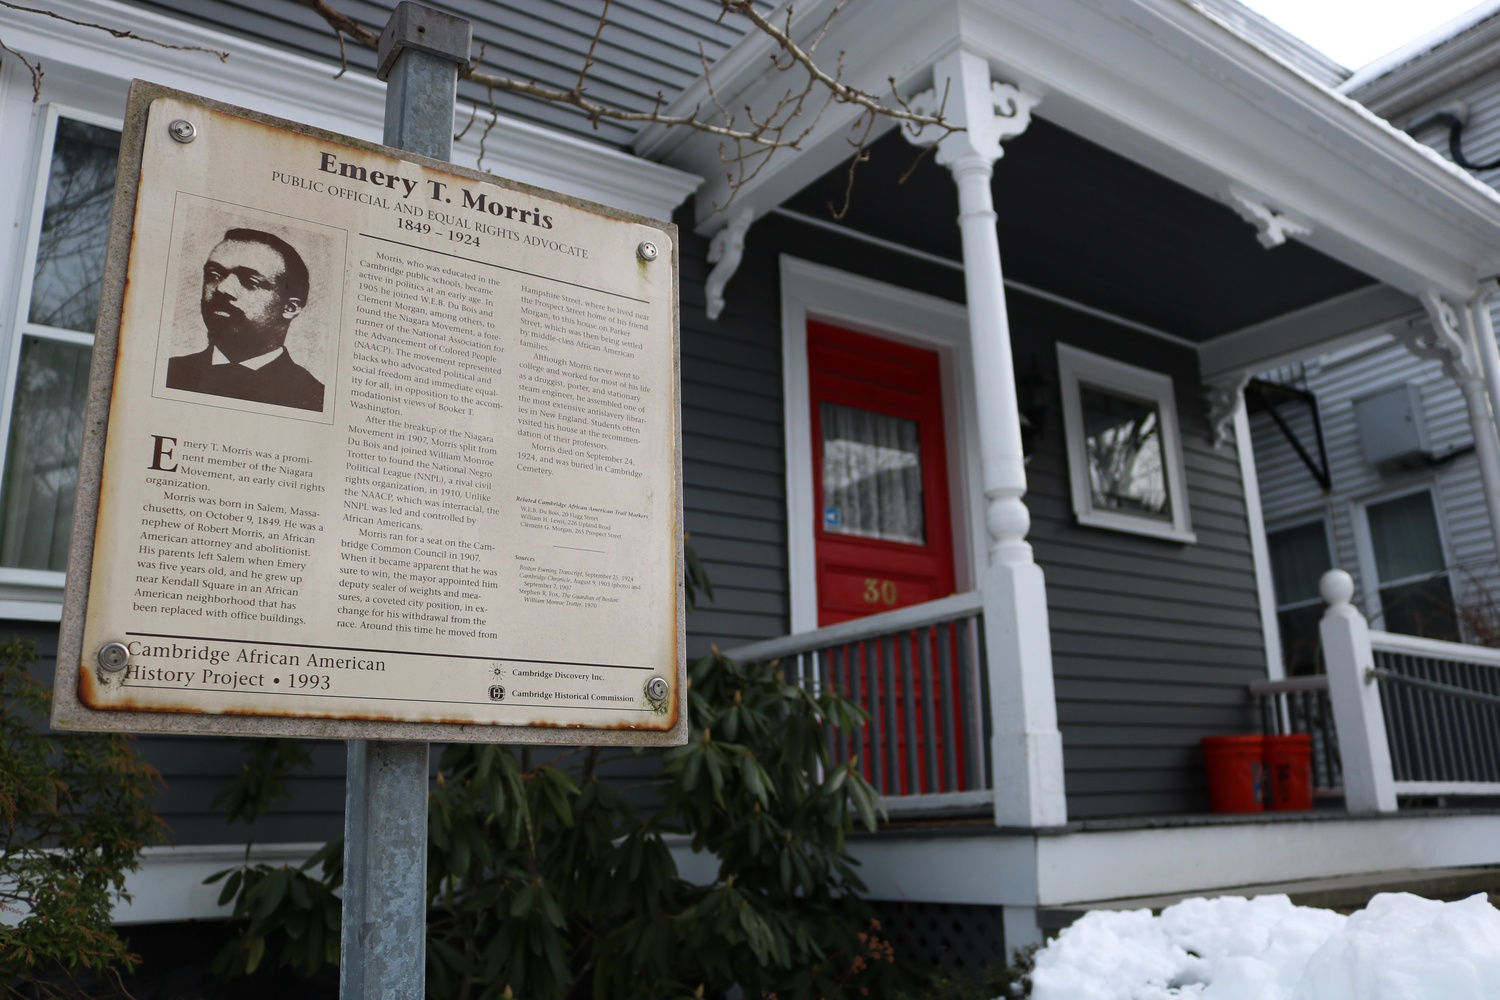 A renovated house near the Radcliffe Quadrangle was the headquarters of Emery T. Morris, who was an activist and leader in the Cambridge area.